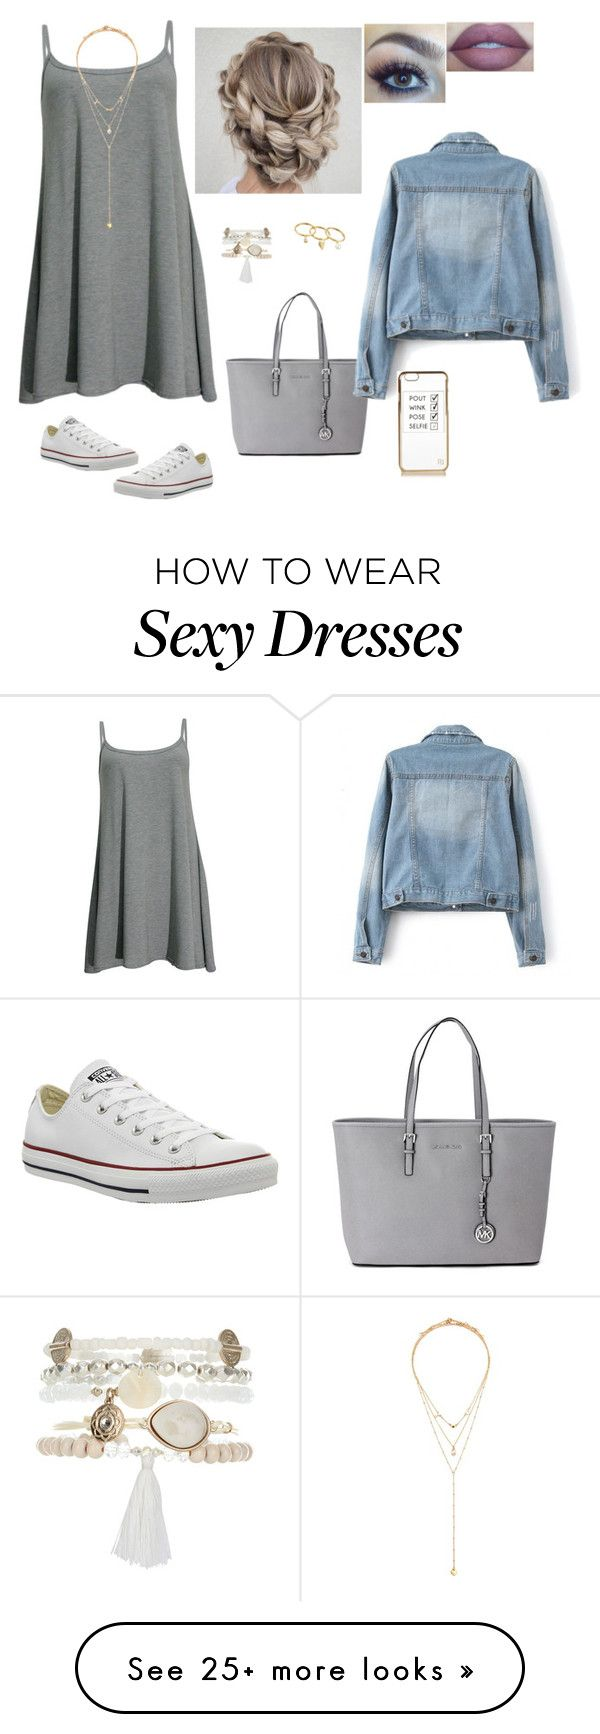 """."" by jaritza-hemmings on Polyvore featuring мода, Converse, Forever 21, Monsoon, Lumière, Michael Kors, Rebecca Minkoff и River Island"